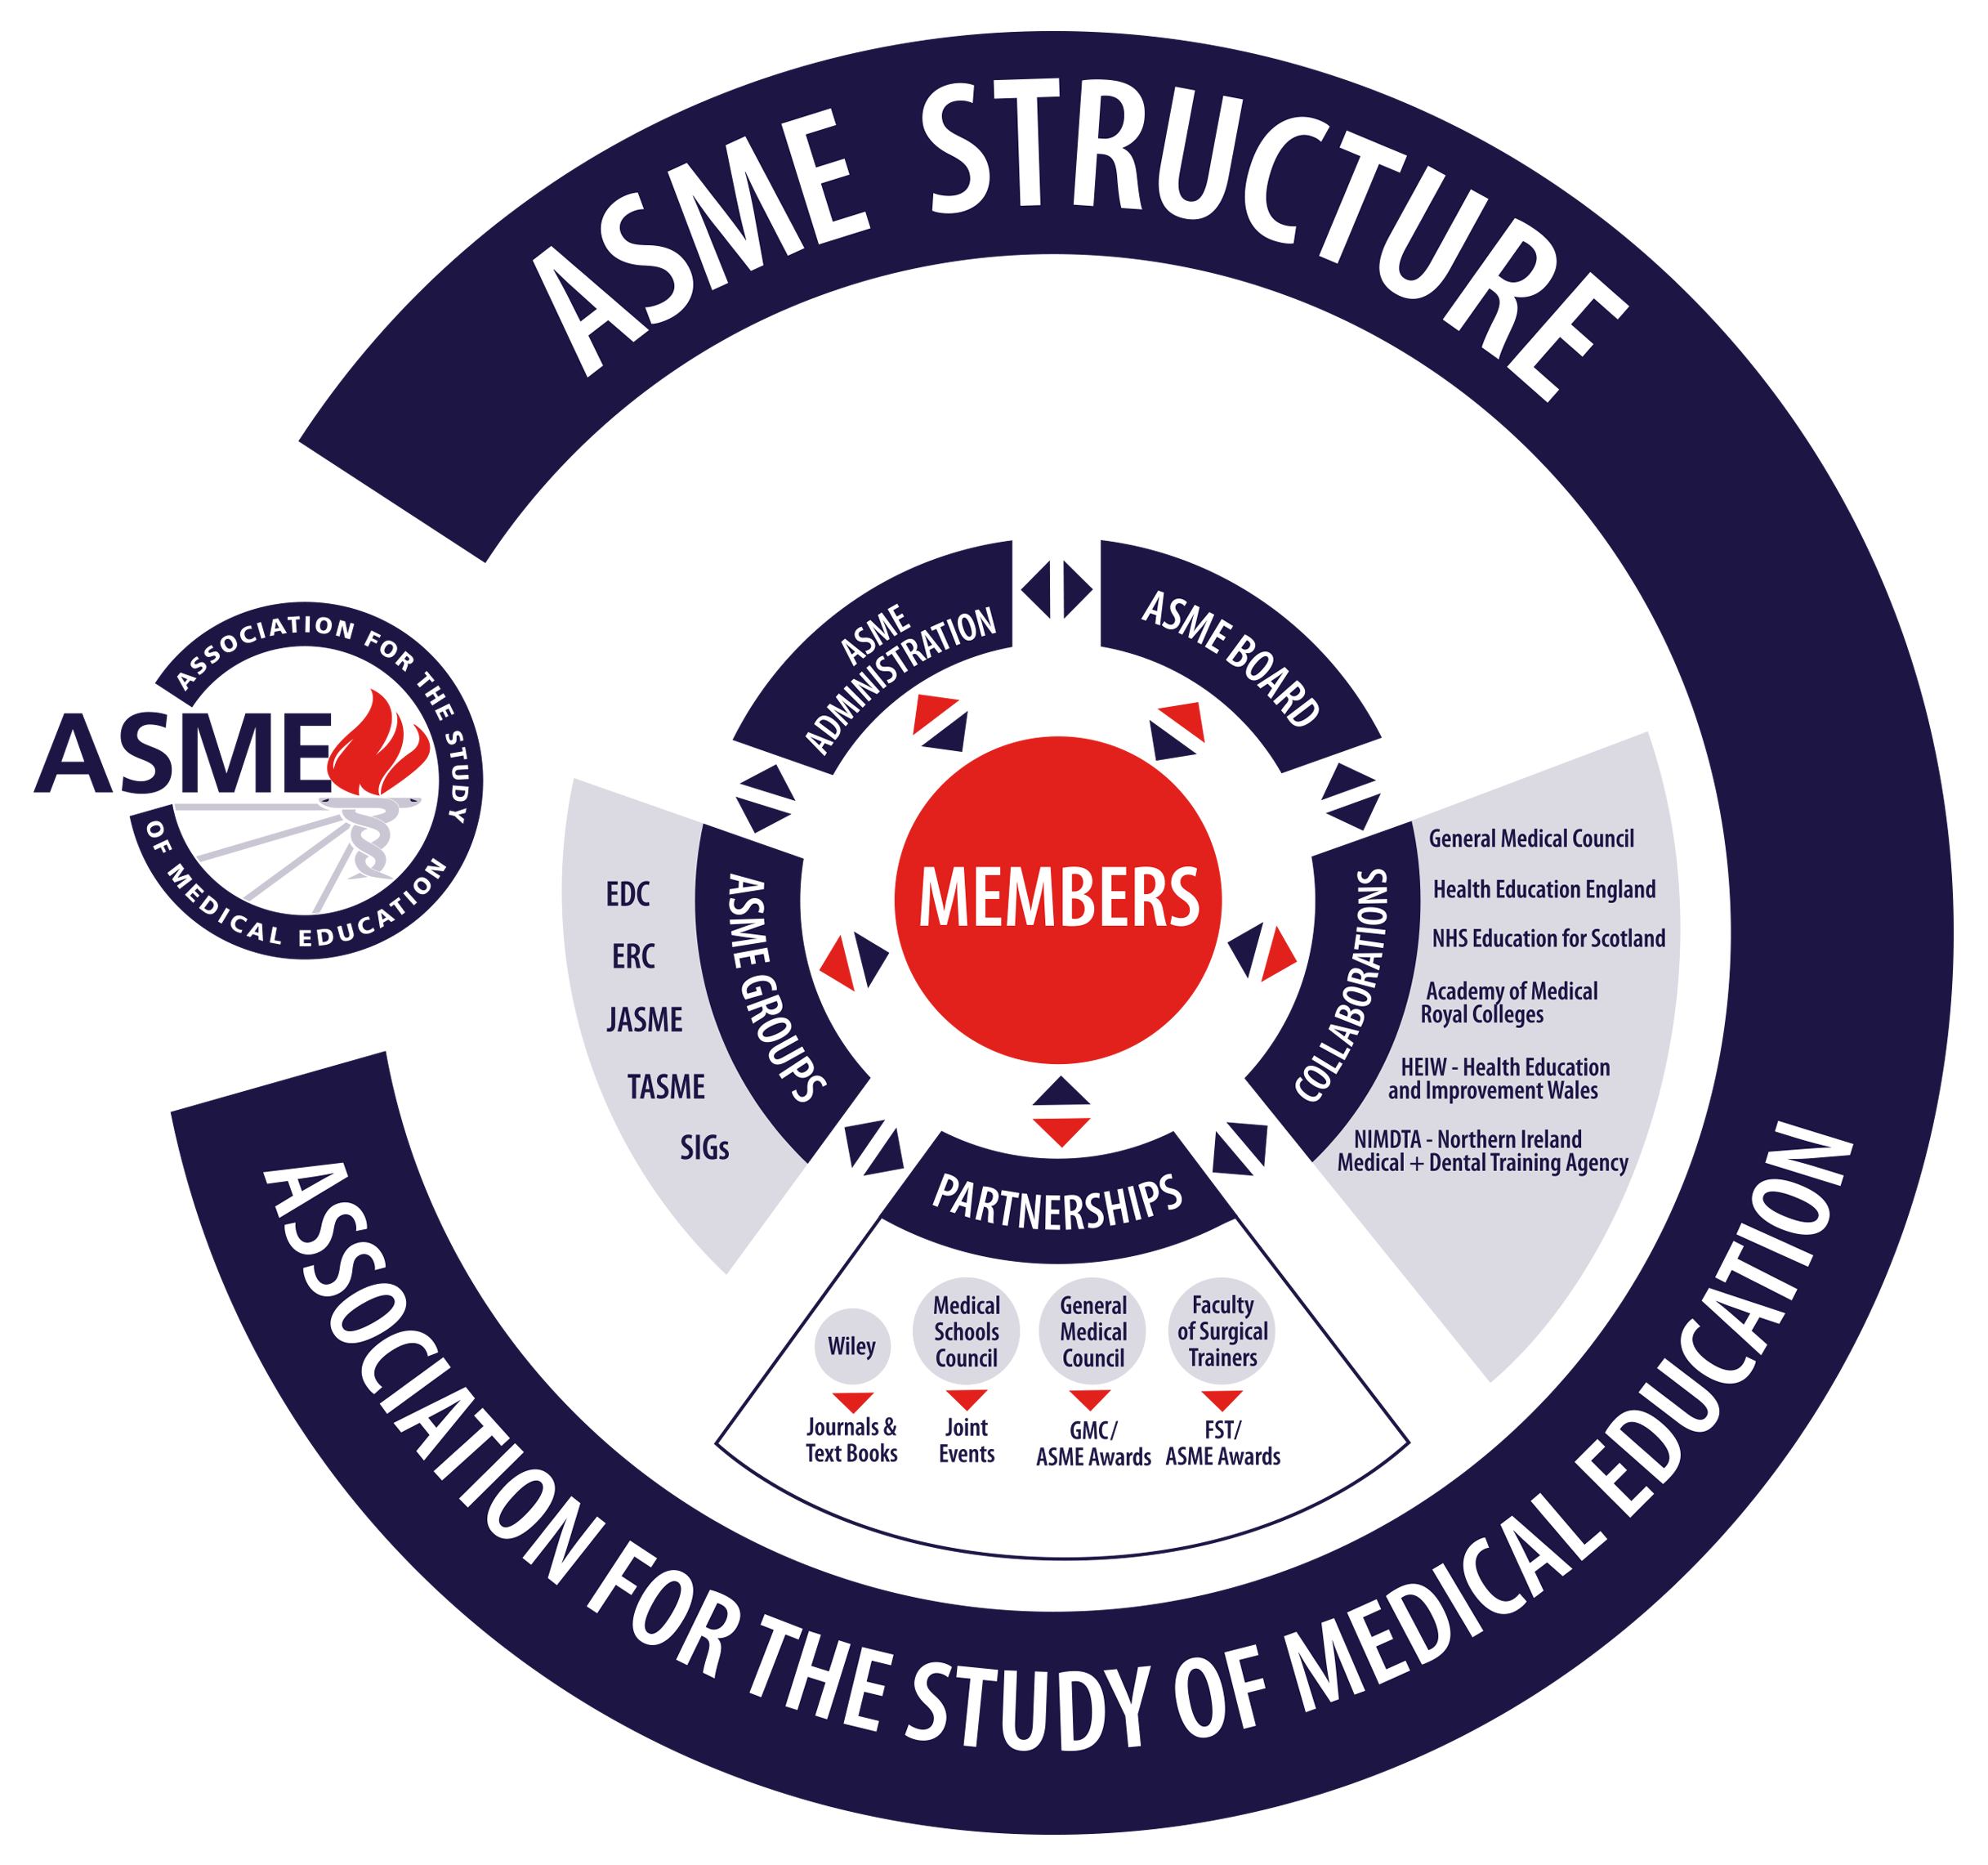 ASME STRUCTURE FINAL FEB 2019